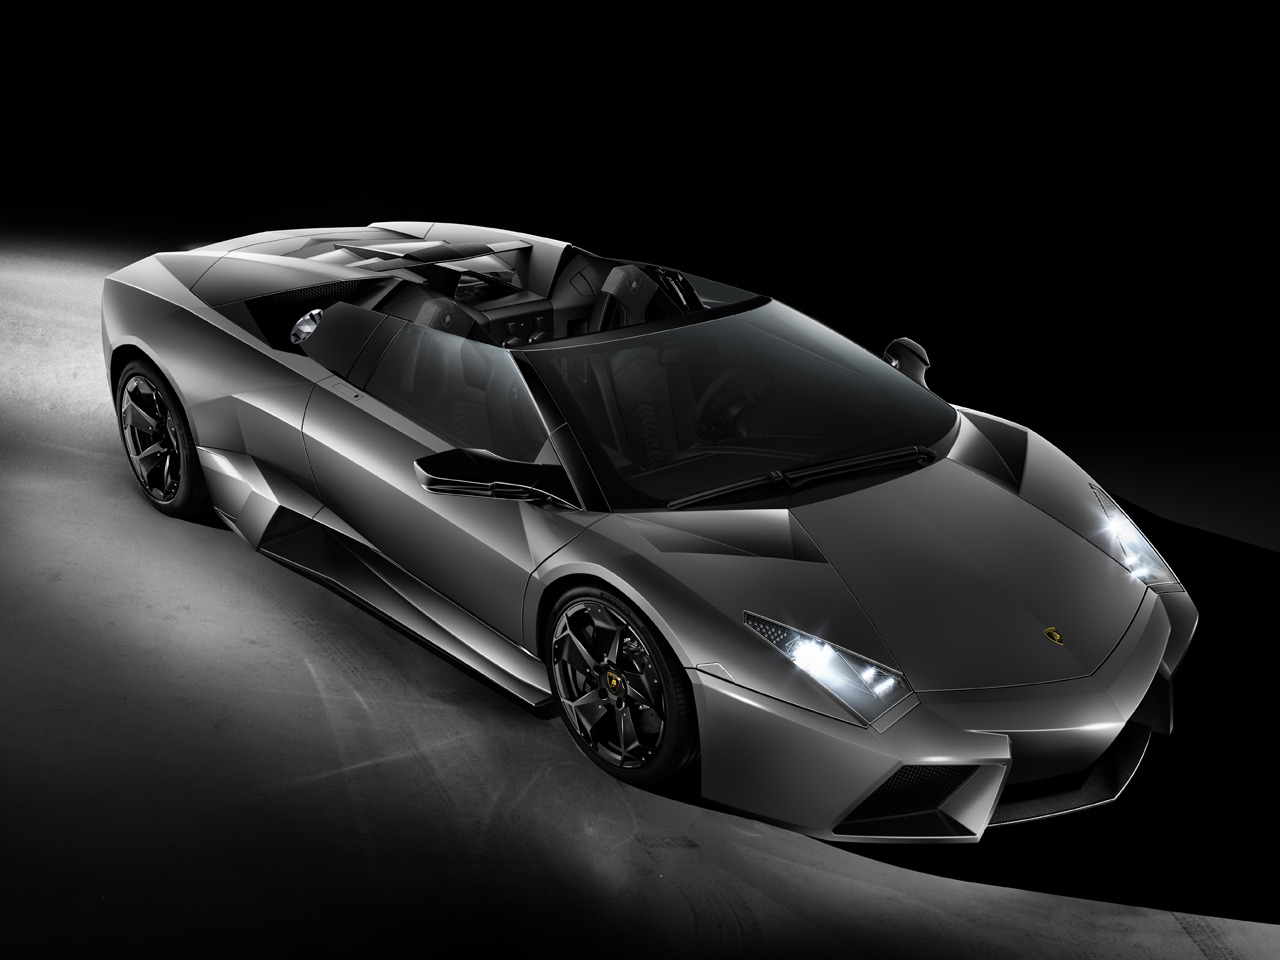 For Sale 2011 Lamborghini Reventon Roadster In The Uk Gtspirit